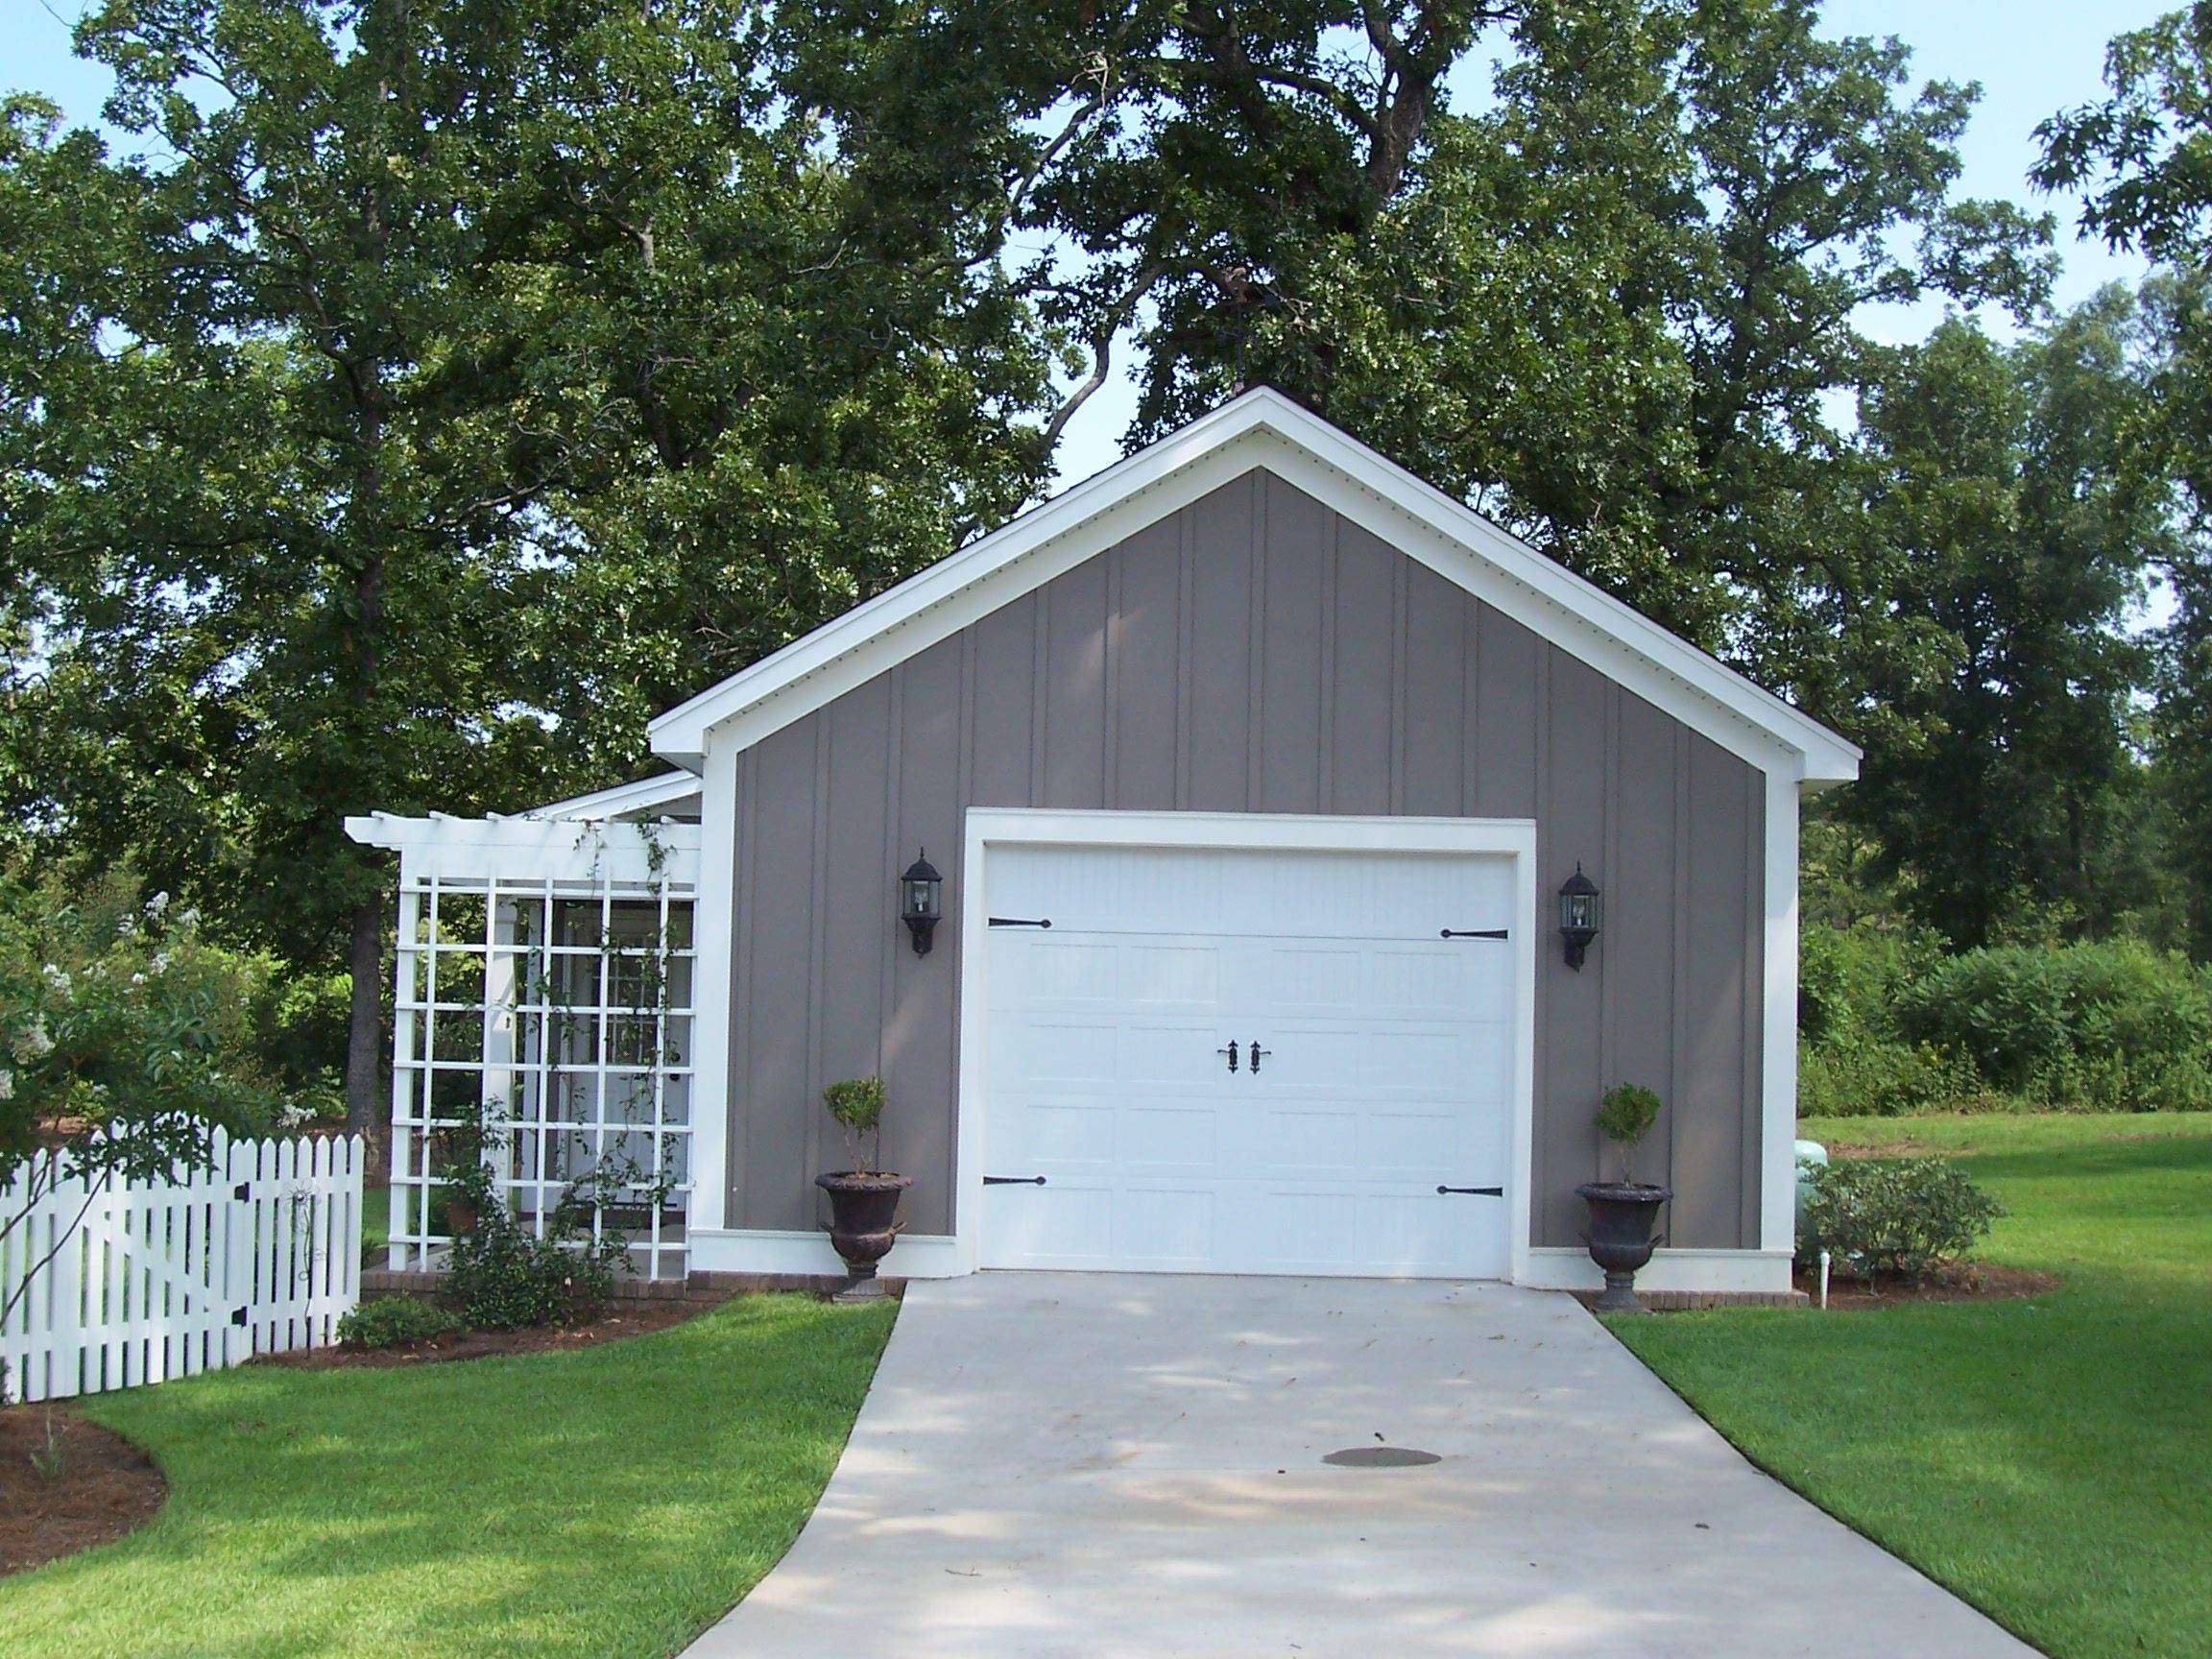 custom built garden shed workshop freestanding garage with side porch lee county - Garden Sheds Georgia